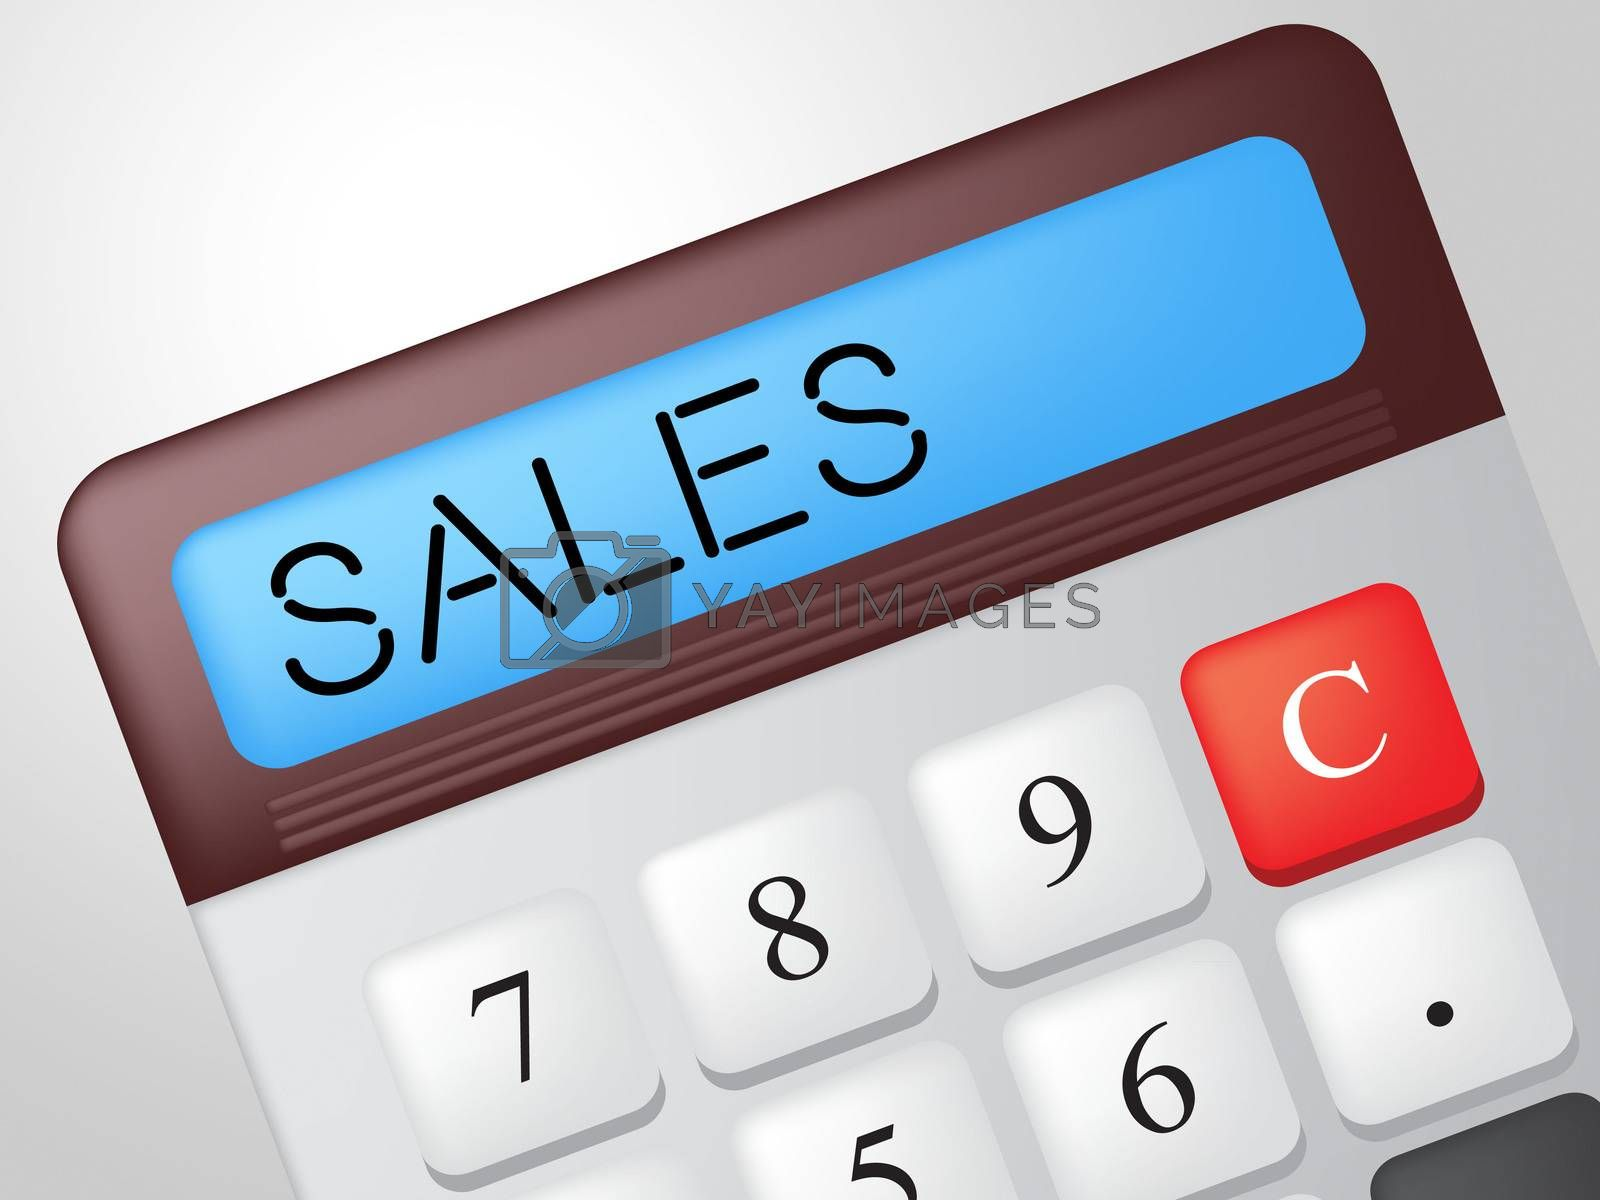 Sales Calculator Indicates Market Calculate And Marketing by stuartmiles